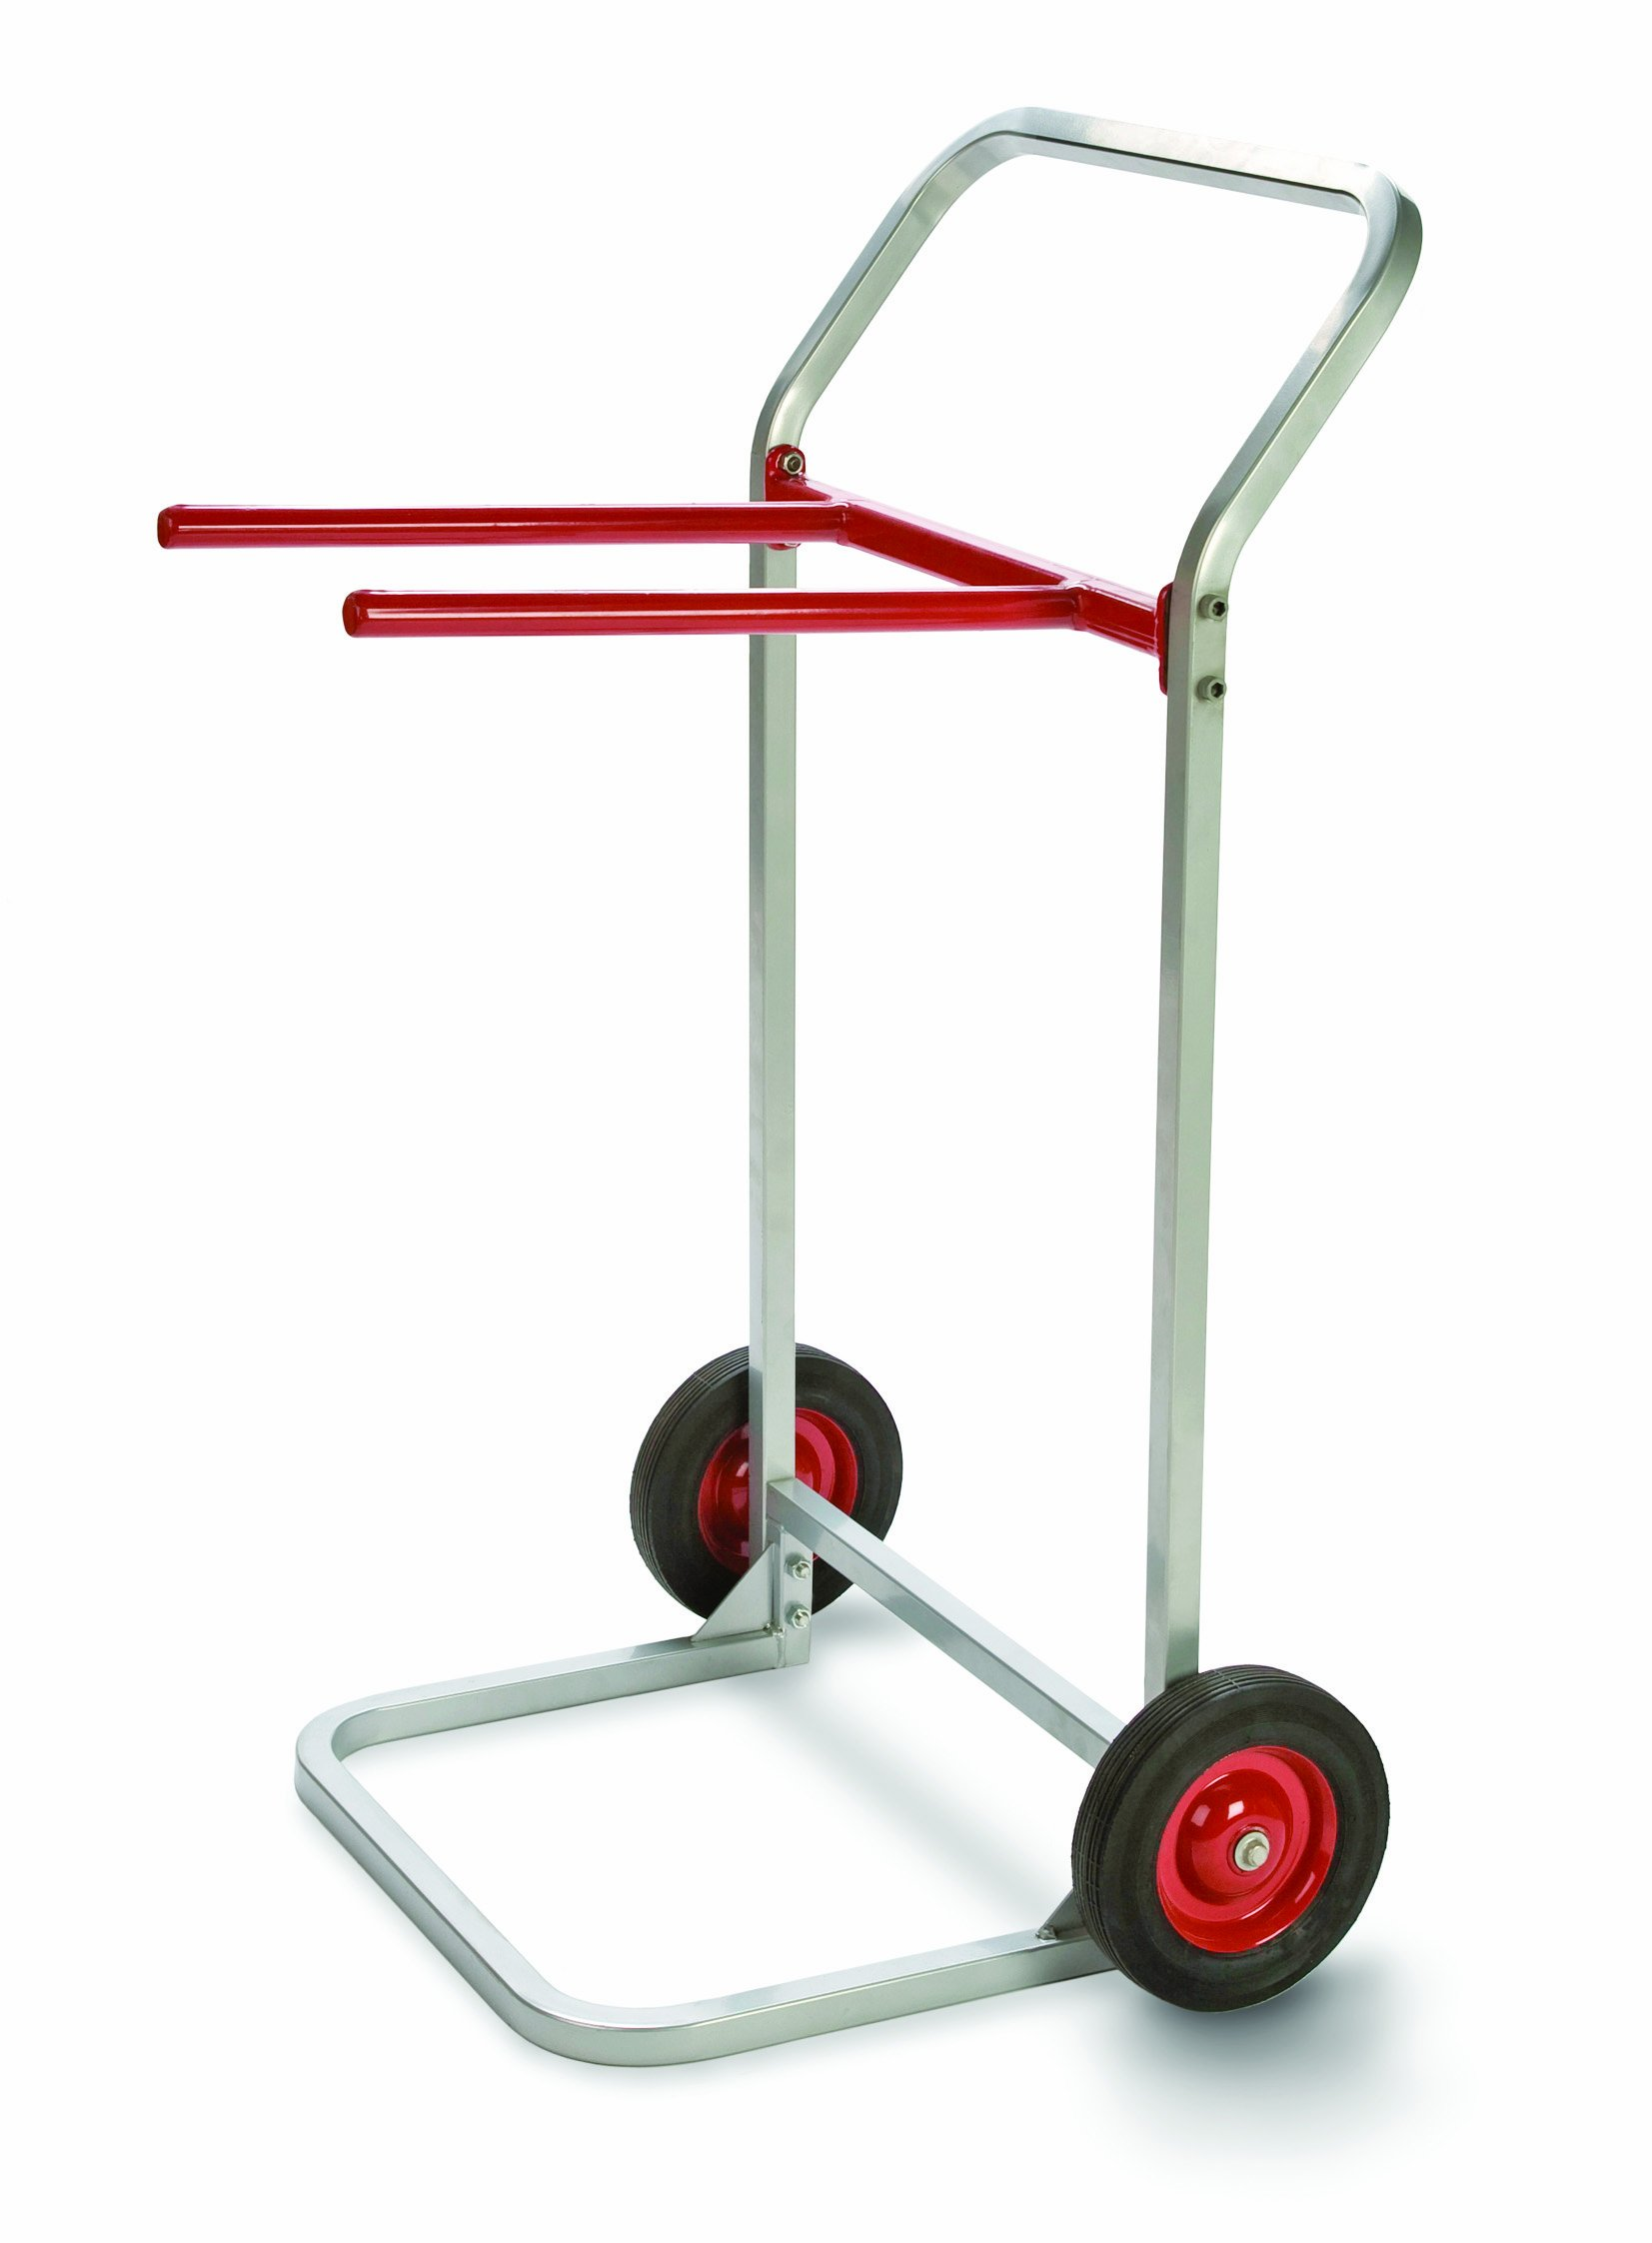 """Raymond 750 Folding Chair Dolly with 8"""" x 1-3/4"""" Skid-Resistant Rubber Wheels, 180 lbs Capacity, 27-3/4"""" Width x 43"""" Height x 22-1/2"""" Depth"""